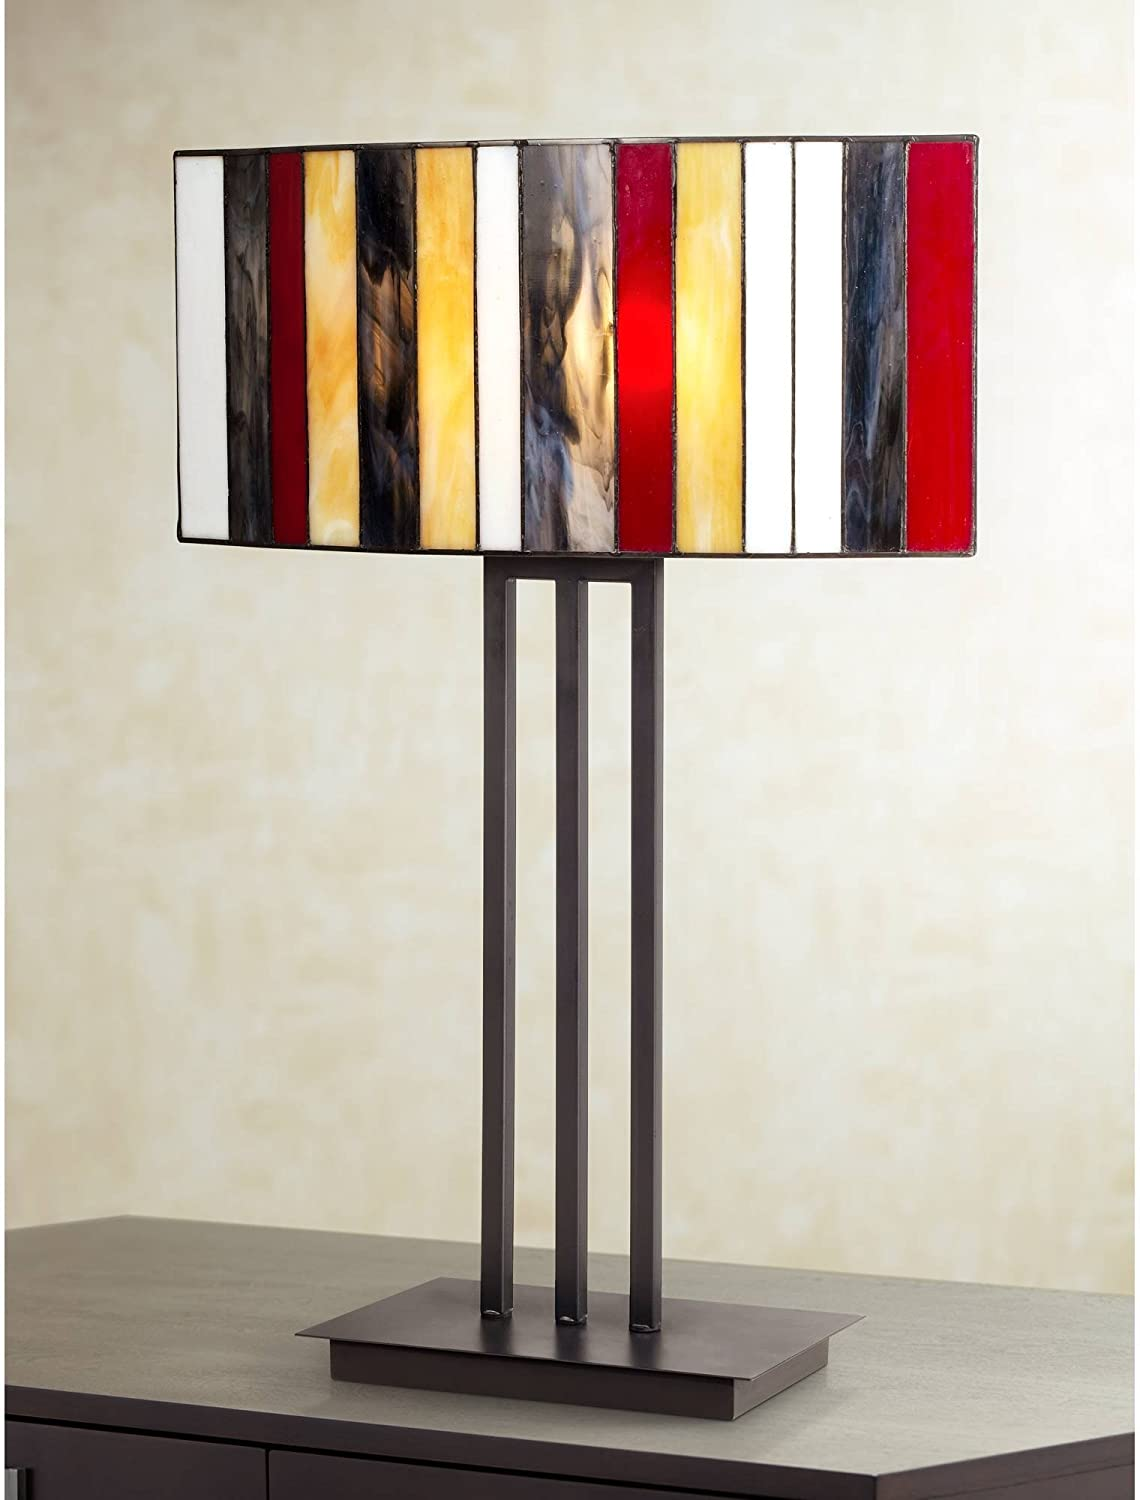 Modern Tiffany Style Table Lamp Decor Bronze Brown Iron Multi Color Striped Stained Glass Shade For Living Room Bedroom House Bedside Nightstand Home Office Reading Family Robert Louis Tiffany Amazon Com